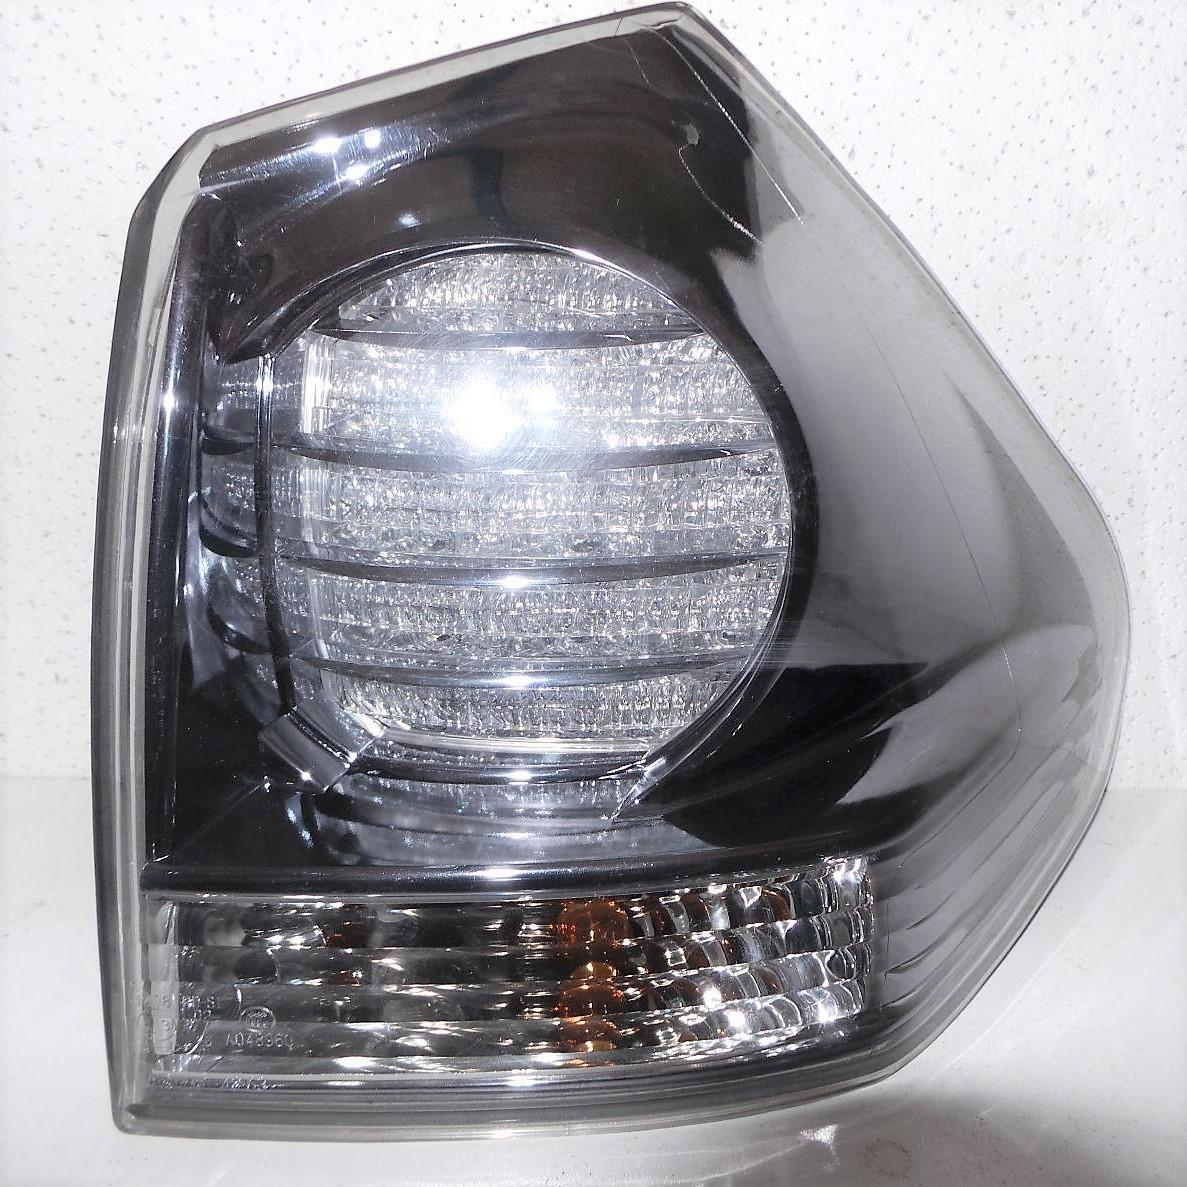 LEXUS RX350, Right Taillight, RX400H, MHU3#, IN BODY, 03/06-02/09